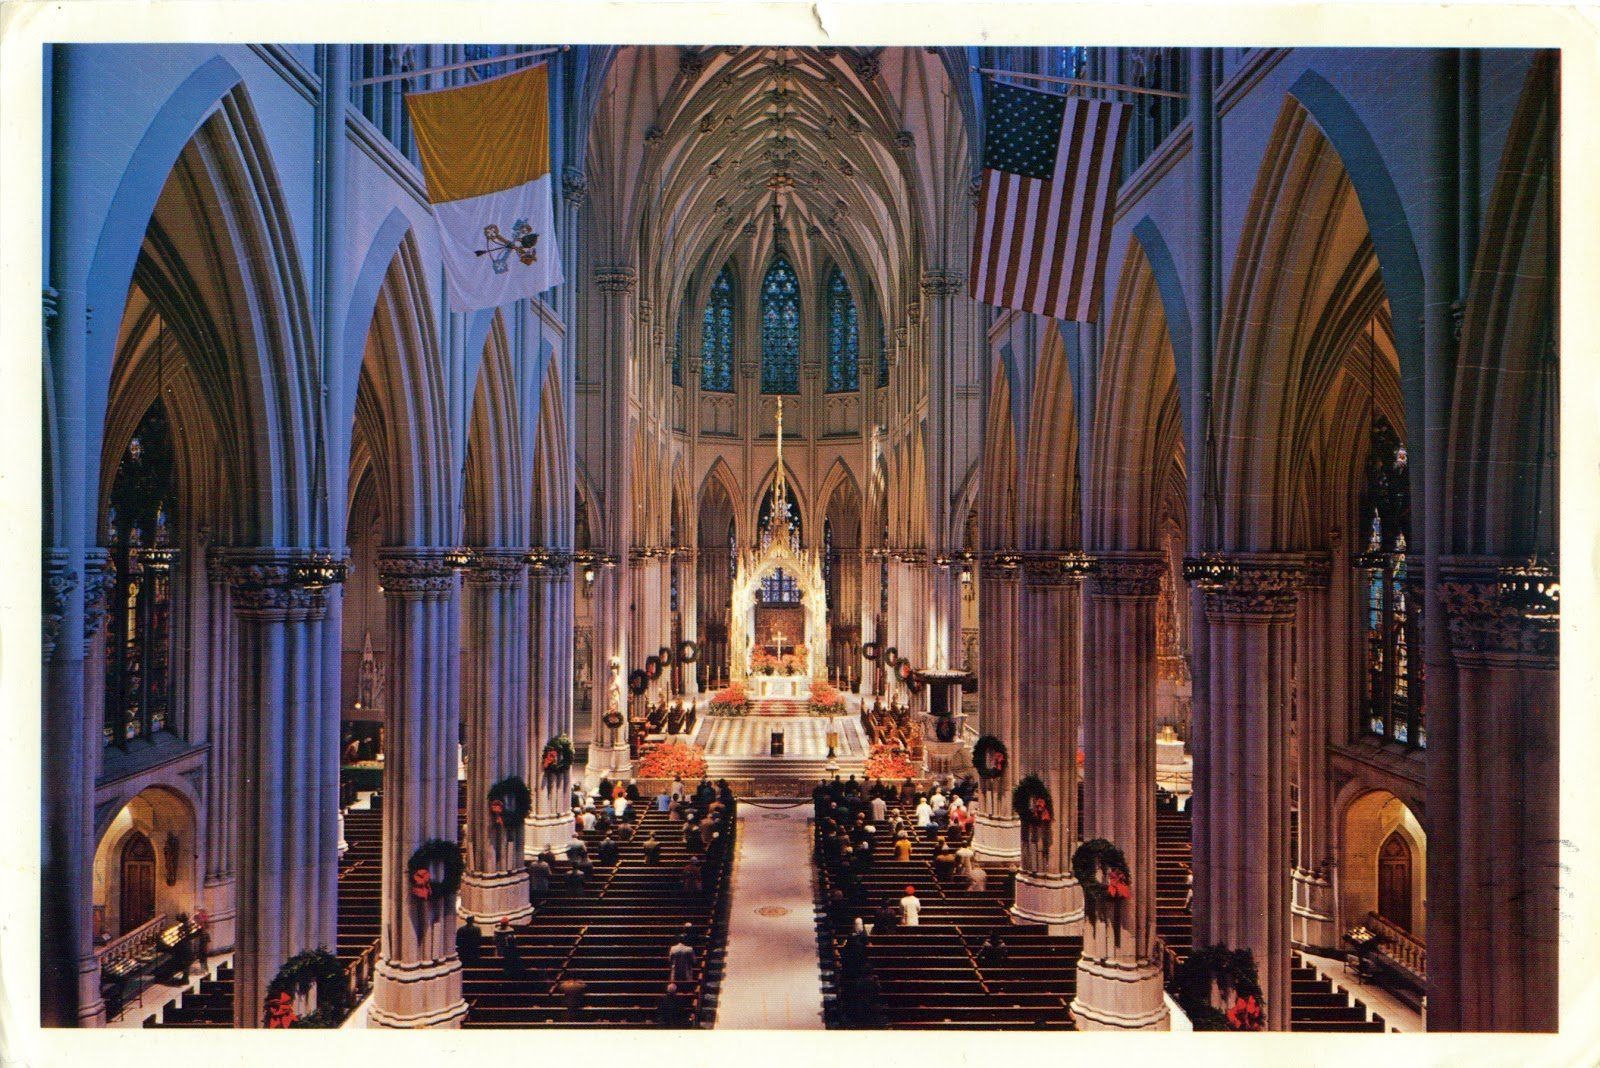 St_Patricks_interior_in_the_1960s.jpg